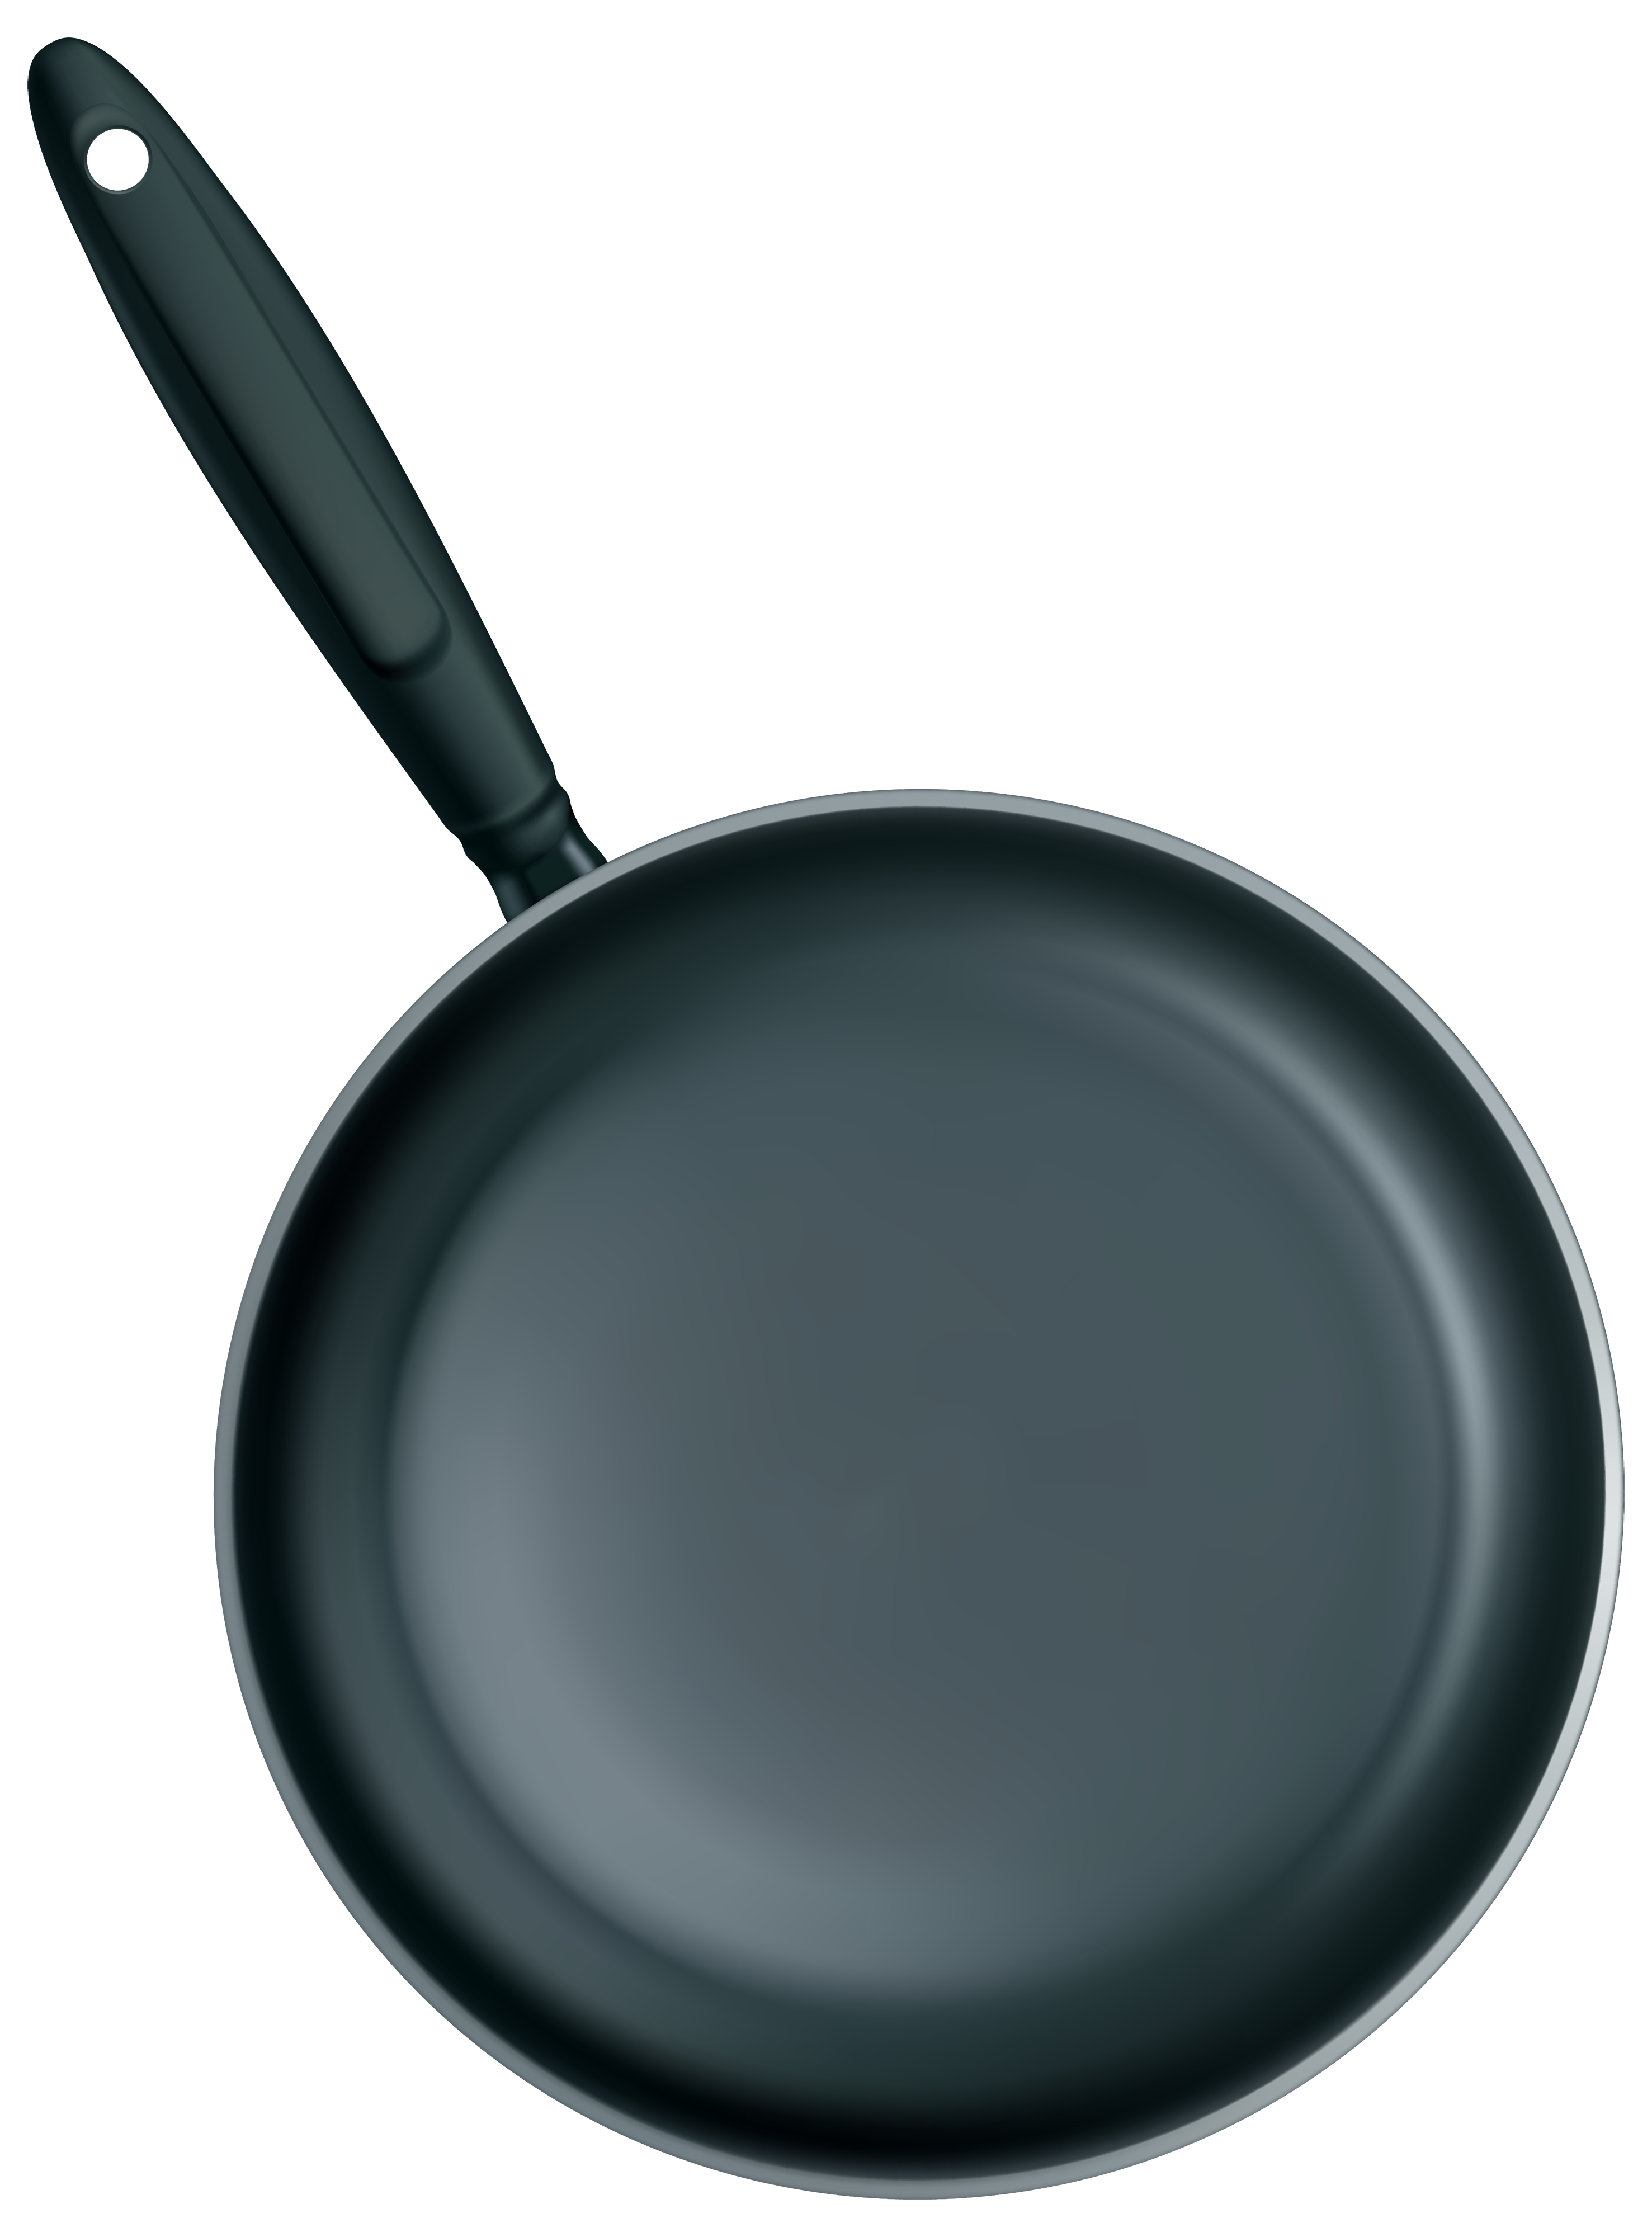 2954x4000 Black Frying Pan Png Clipart